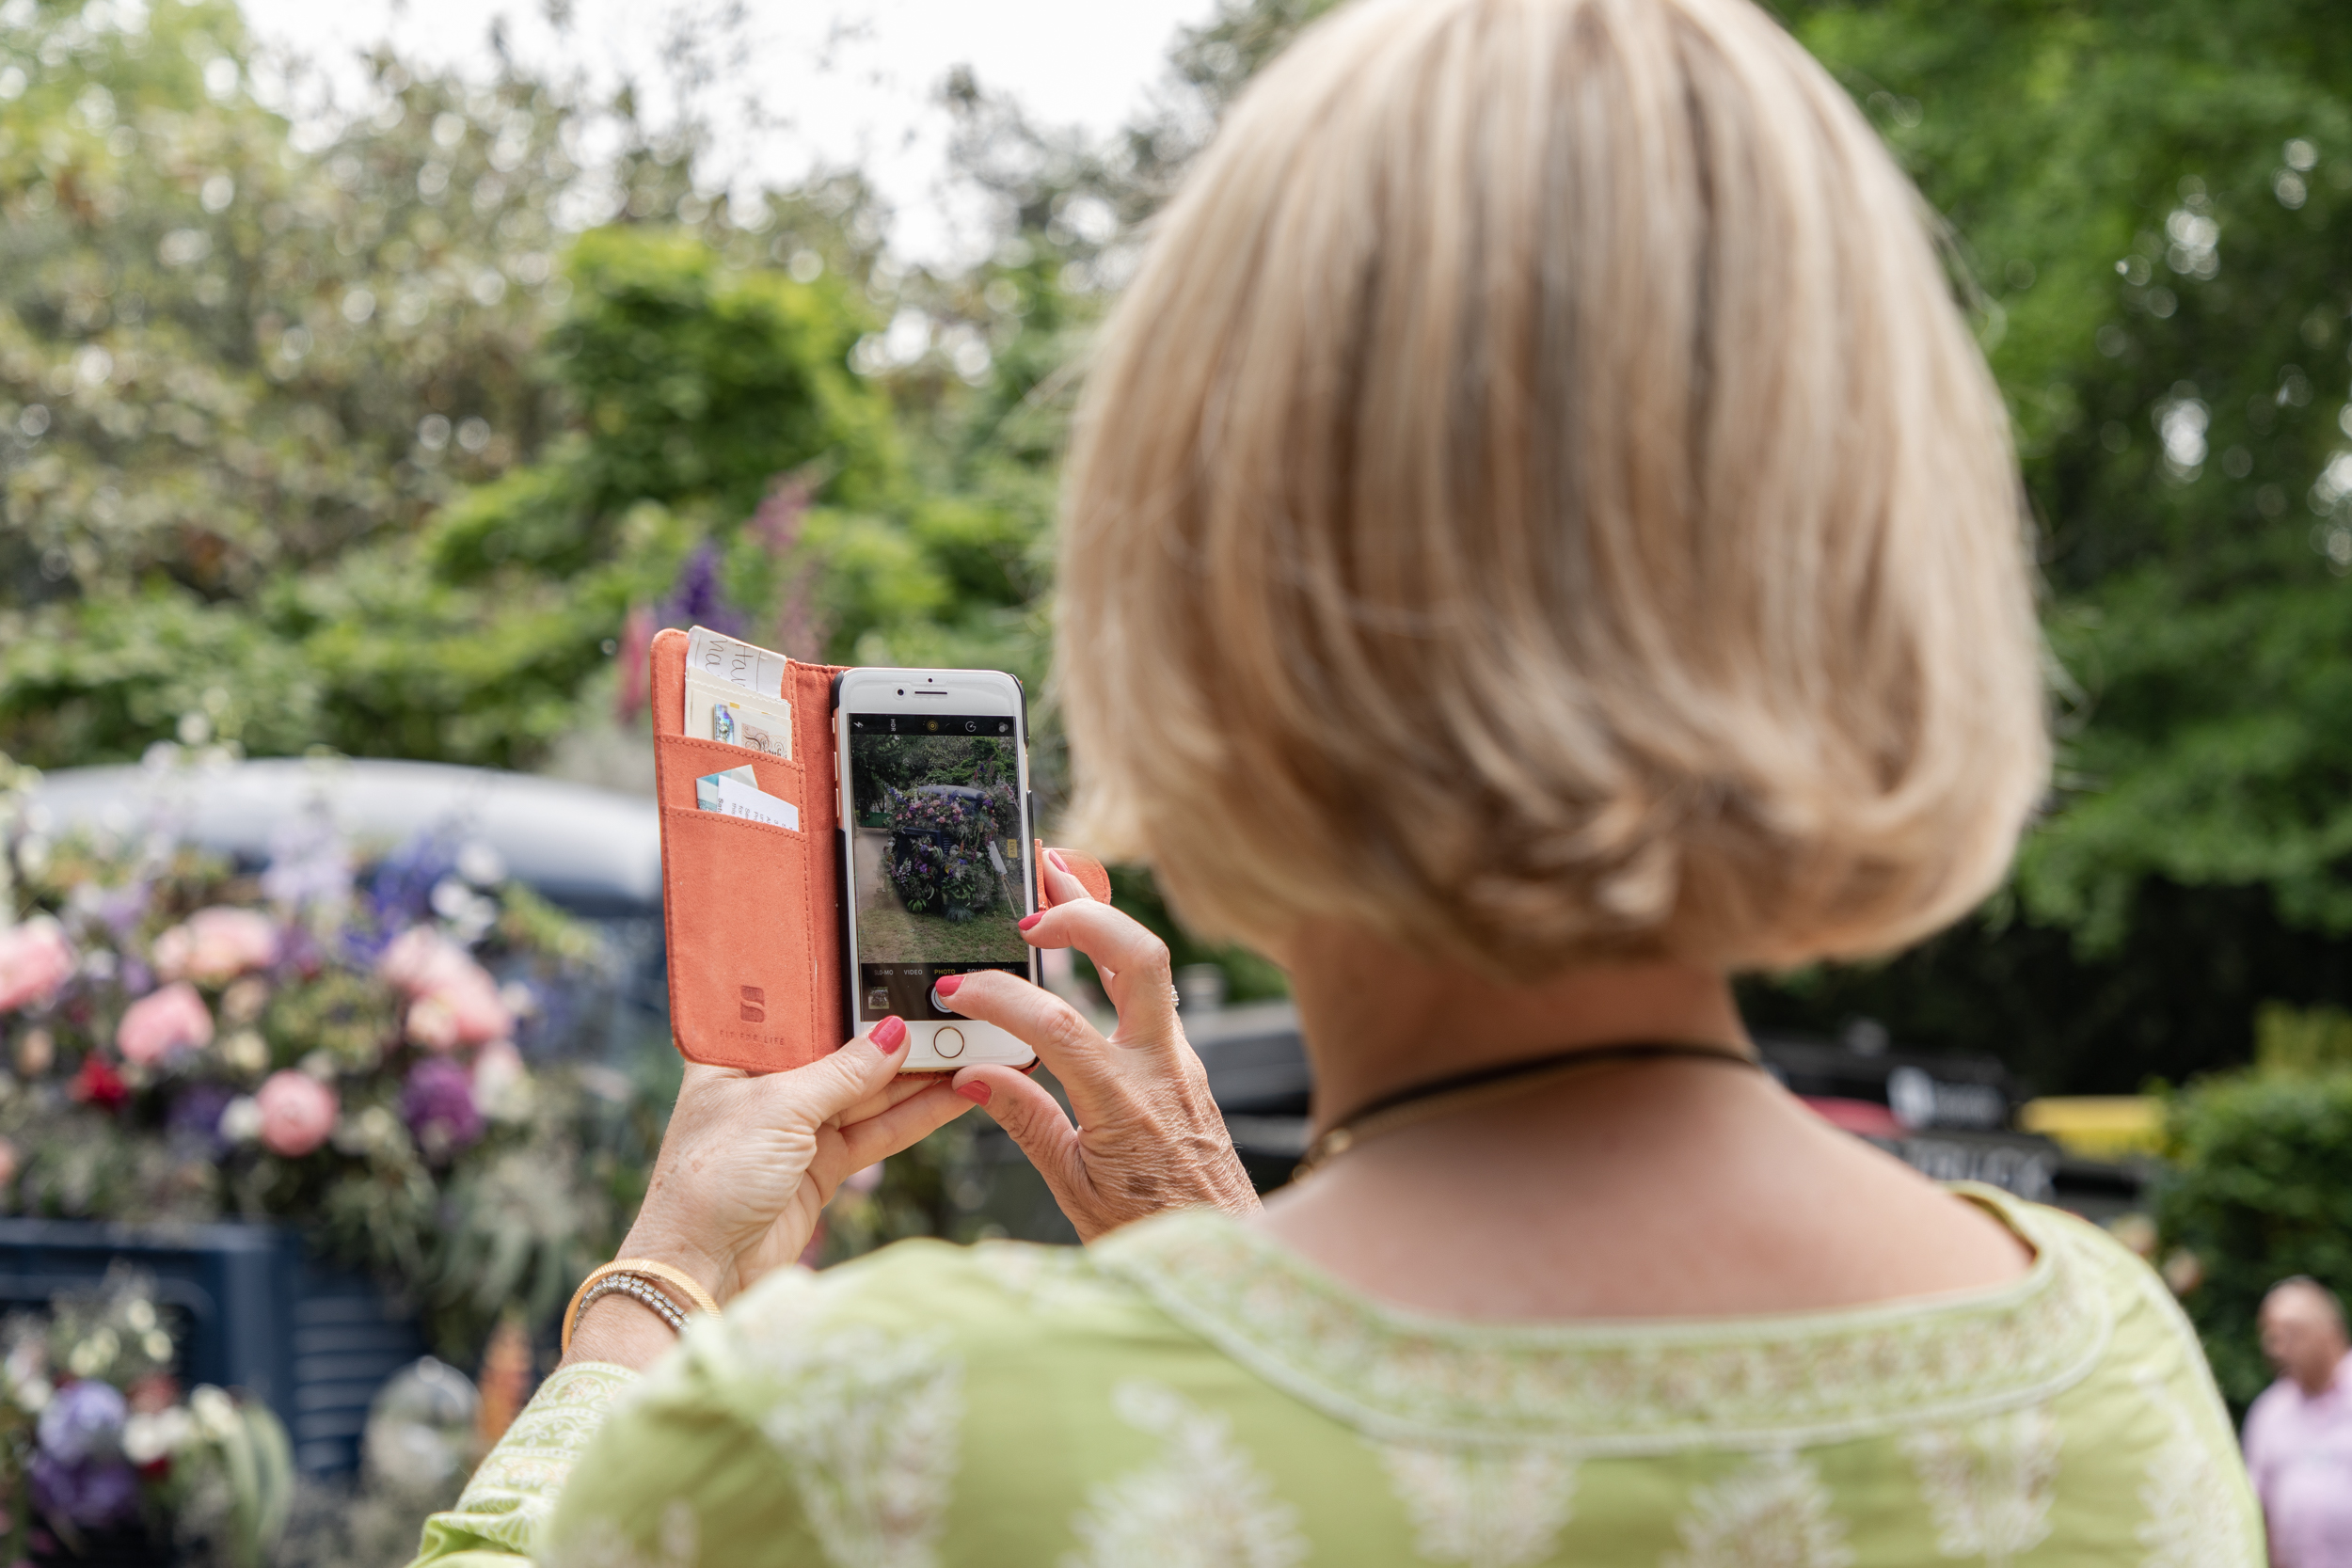 A visitor at this years RHS Chelsea Flower Show grabbing a quick image on her phone.